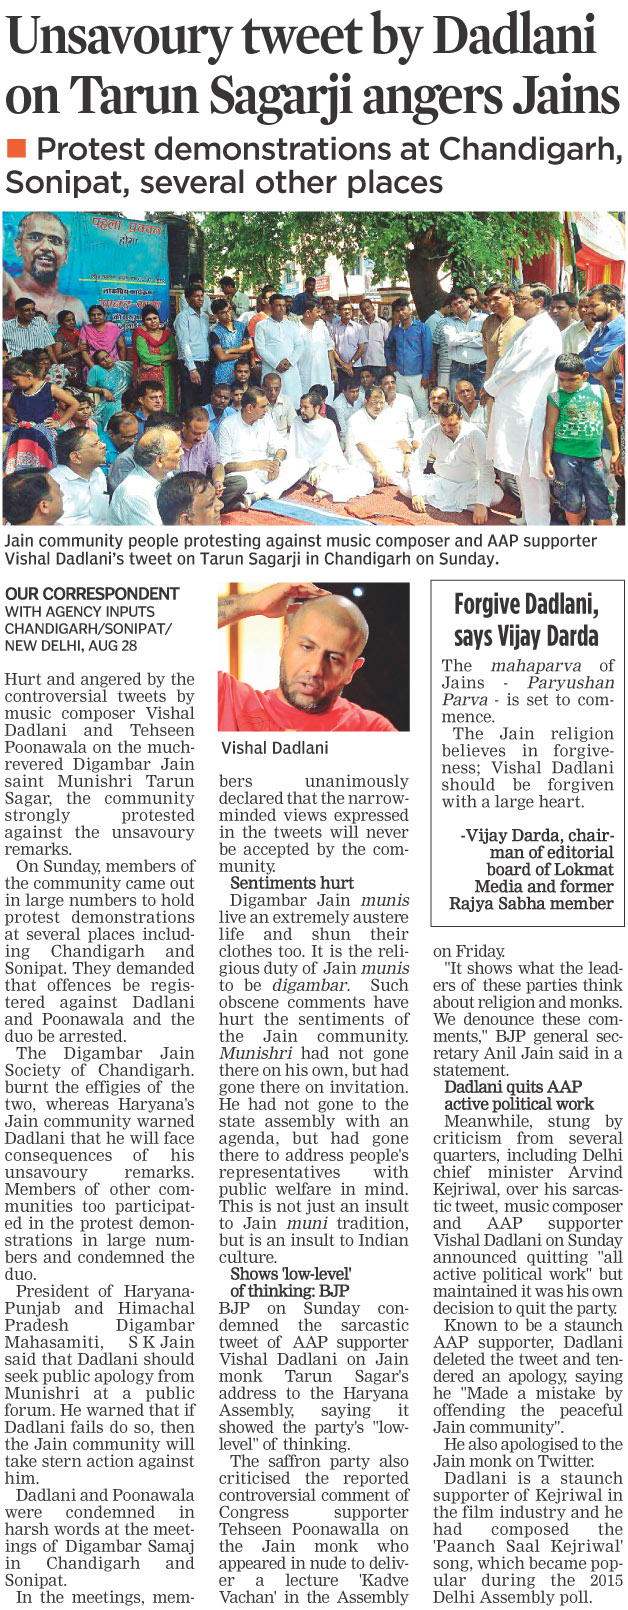 University tweet by Dadlani on Tarun Sagarji angers Jains